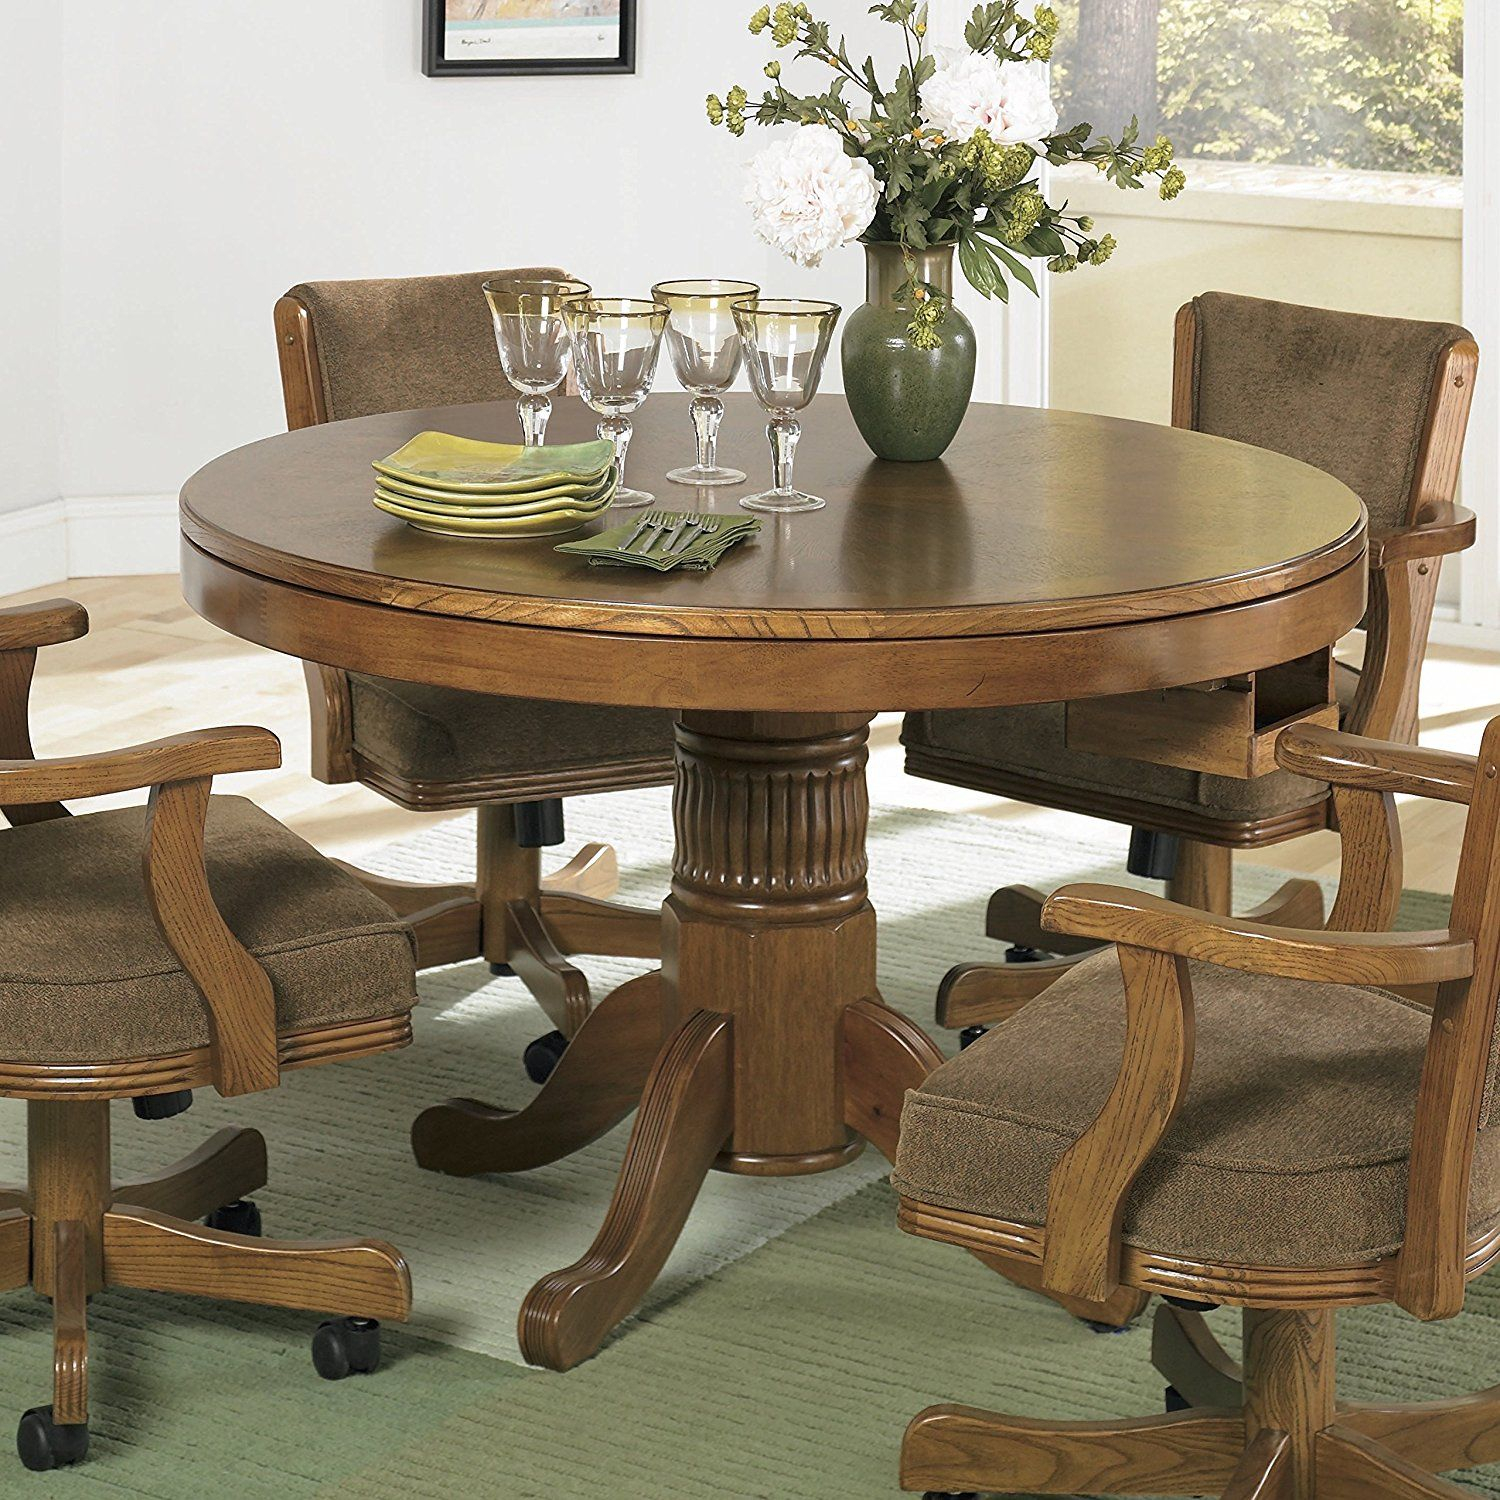 game table chairs with casters fice Pinterest